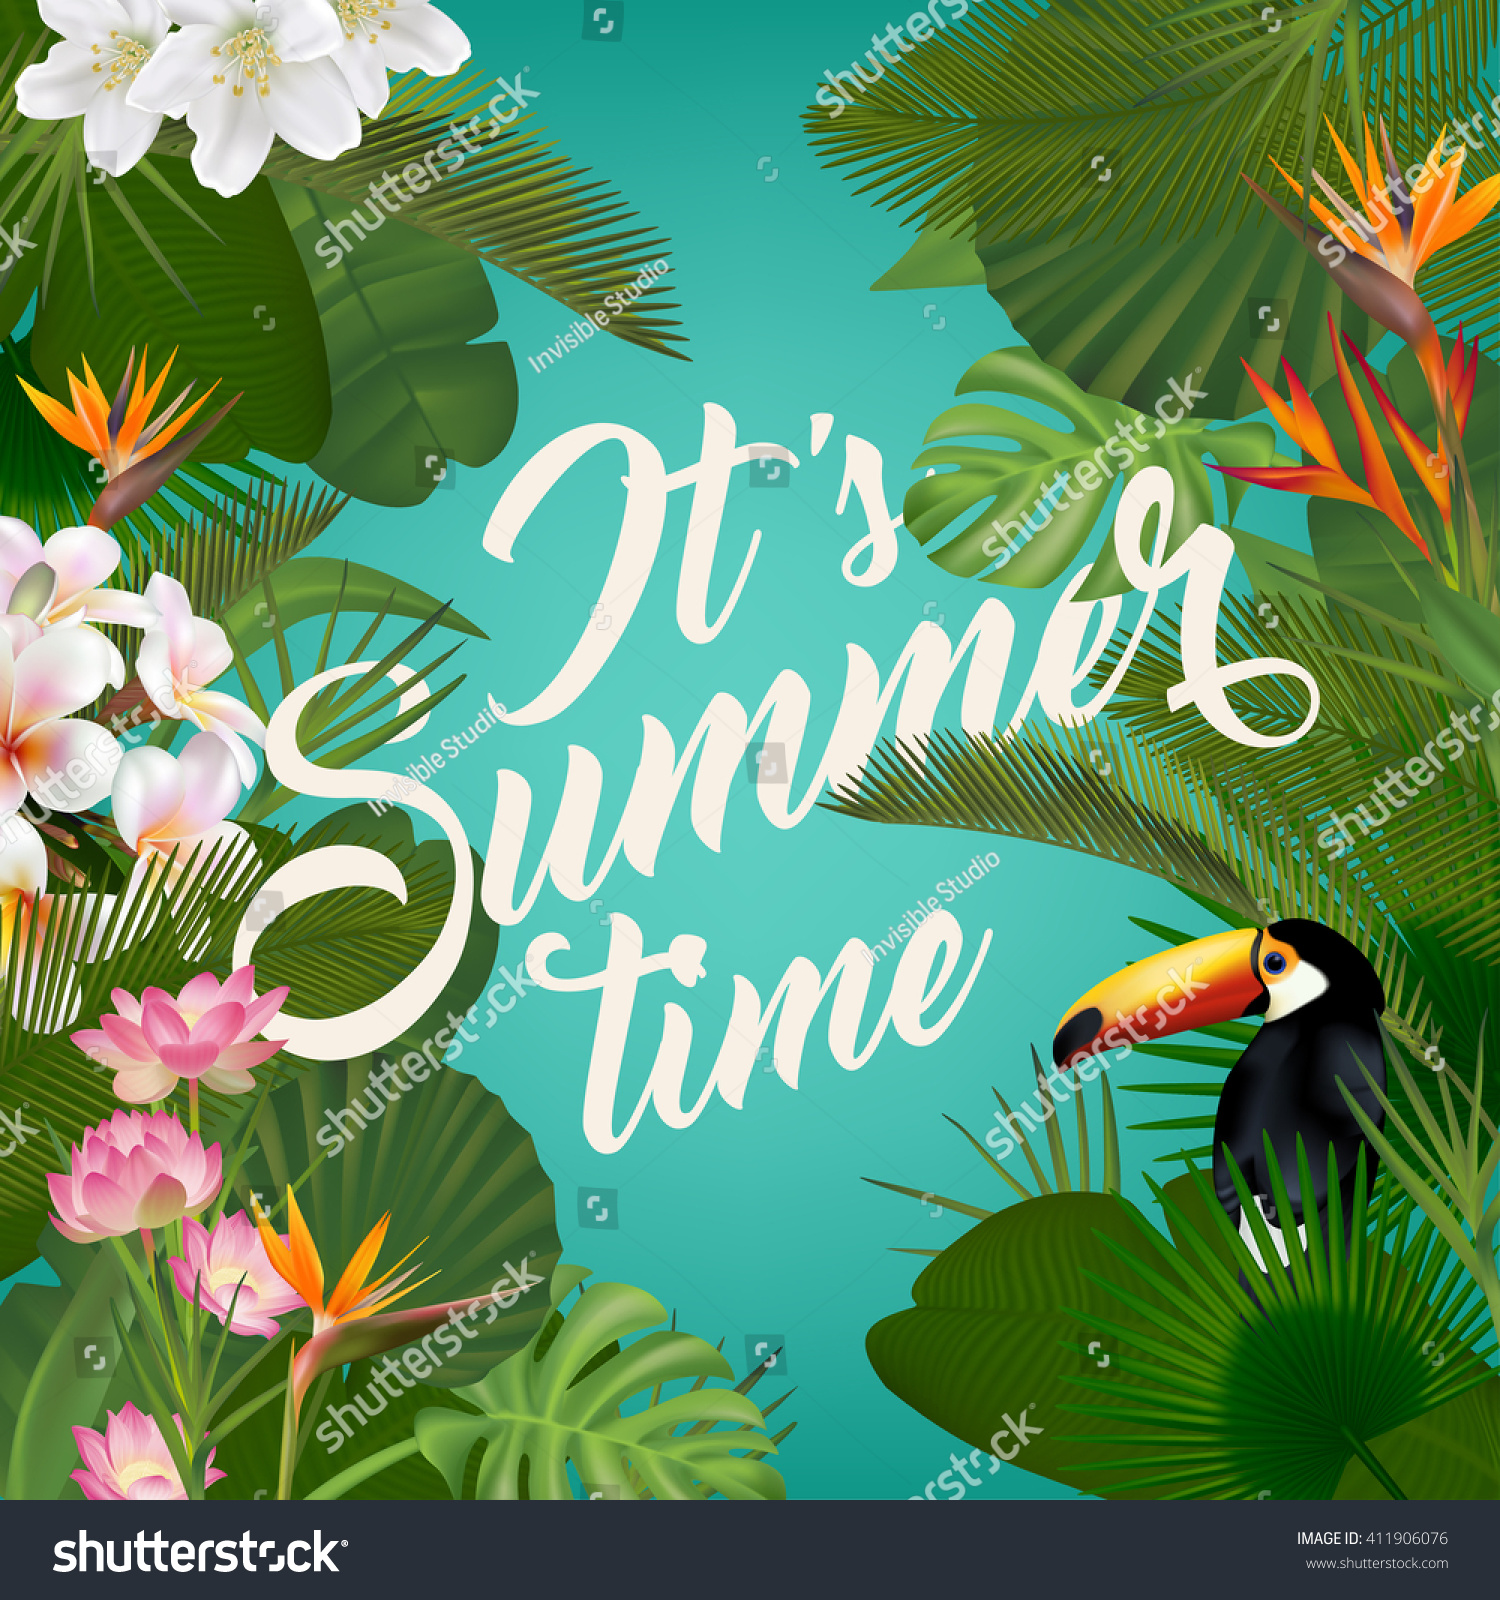 Summer party poster design vector premium download - Summer Time Wallpaper Tropical Plants Fun Stock Vector